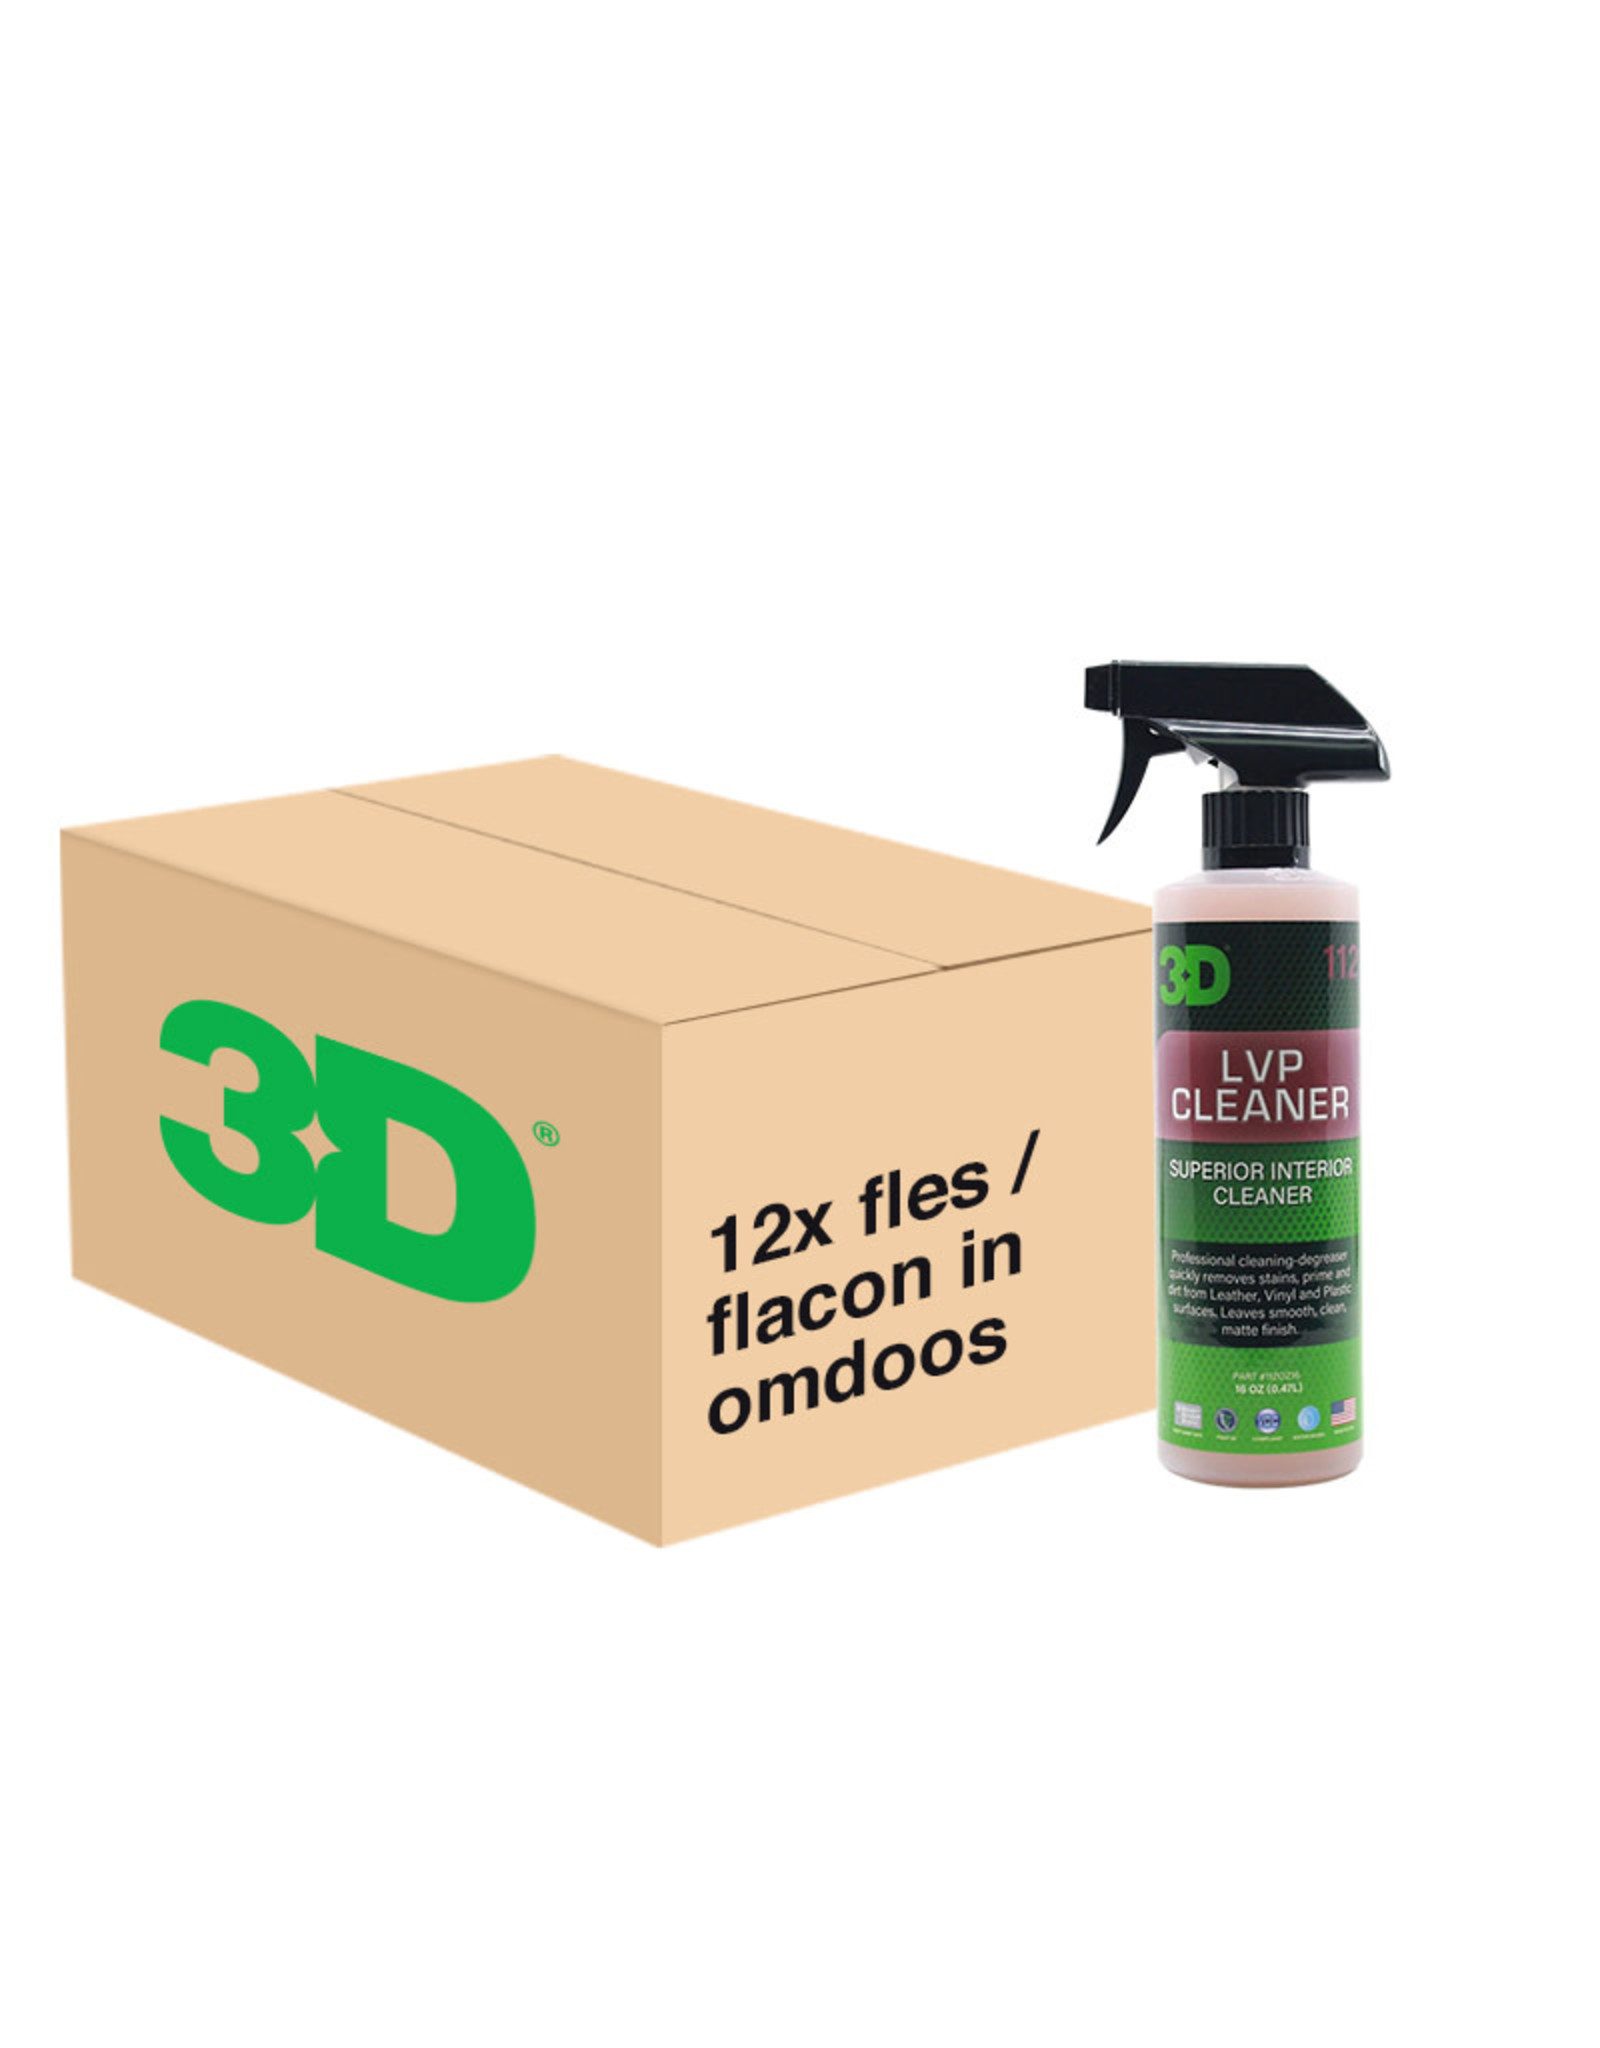 3D PRODUCTS 3D LVP Cleaner Superior Interior Cleaner - 16 oz / 473 ml - 12x Spray Fles -  grootverpakking